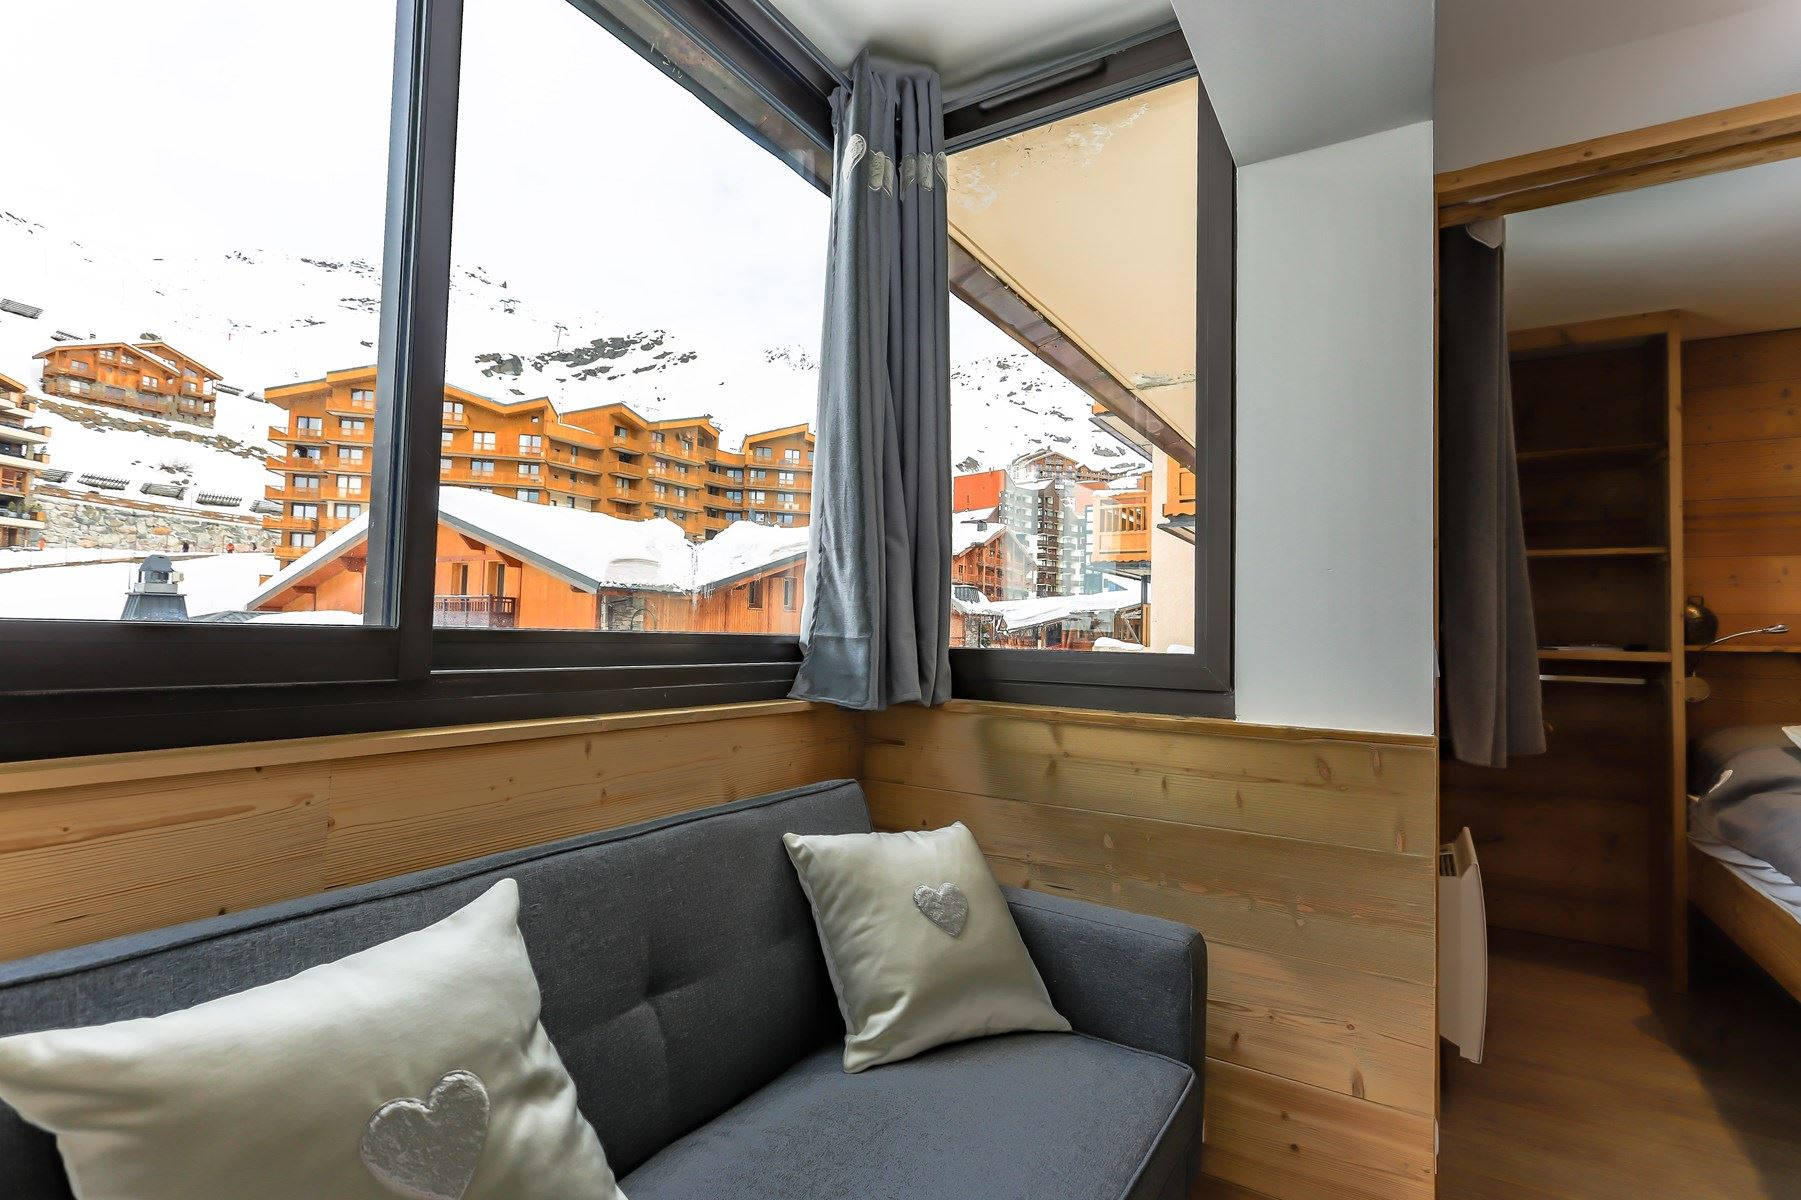 VANOISE 165 / APPARTEMENT 2 PIECES CABINE 4 PERSONNES - ADA